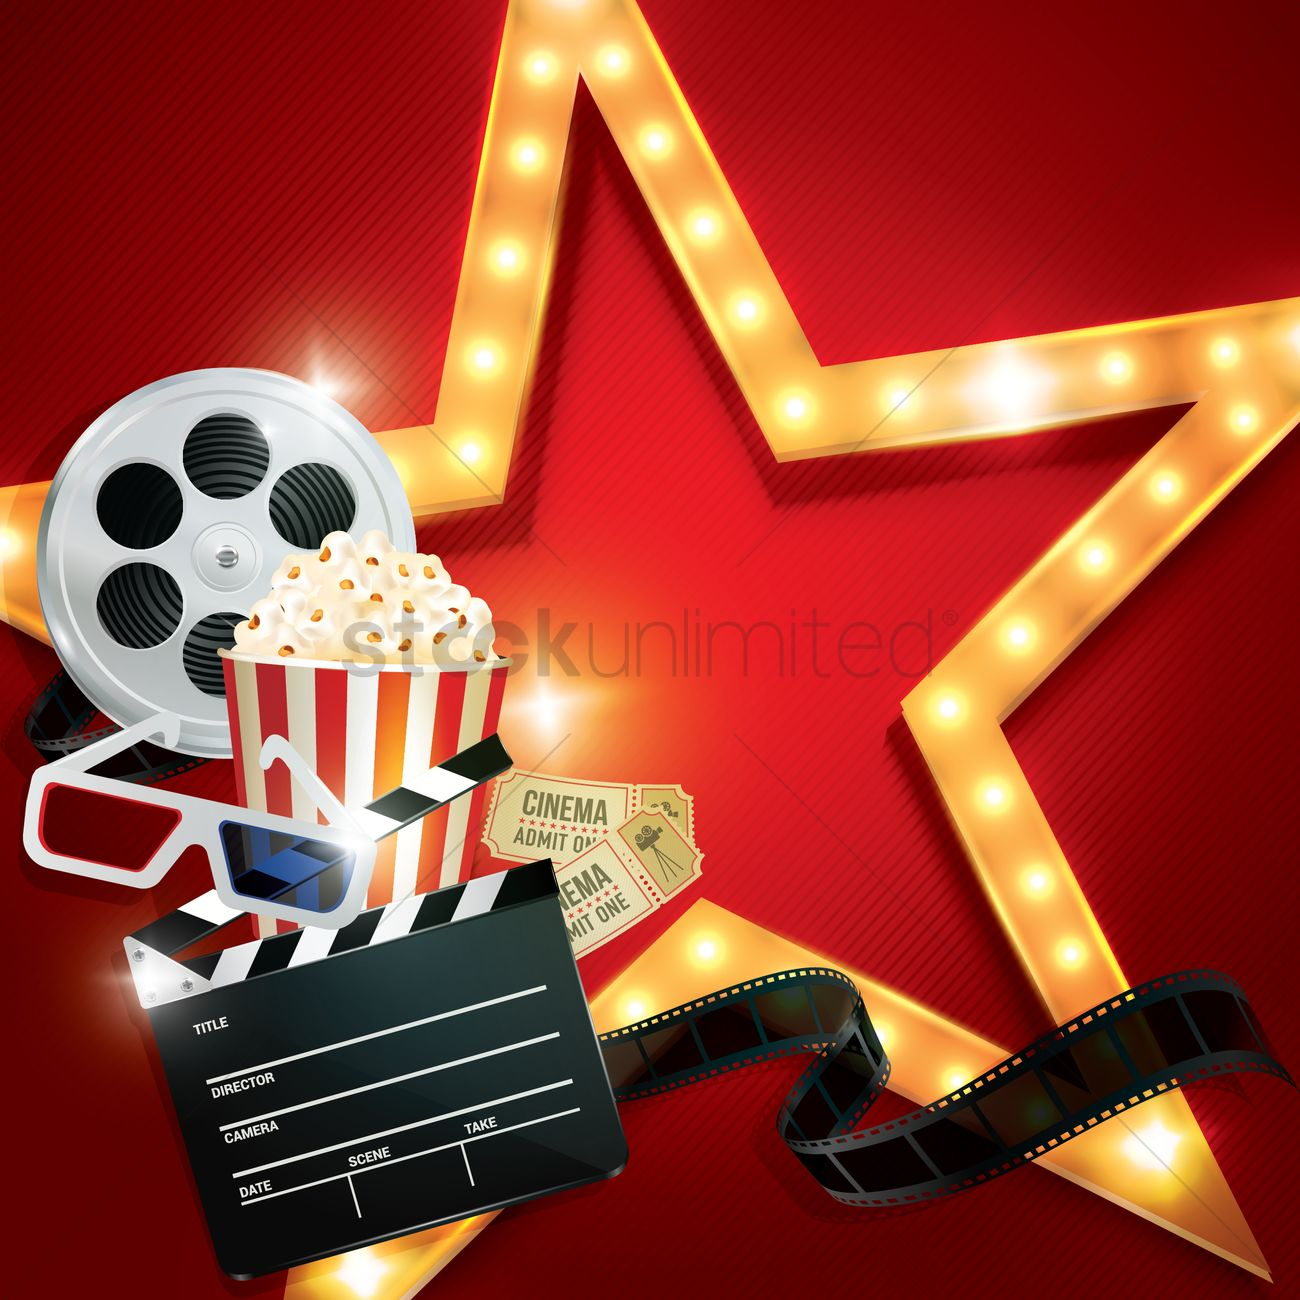 cinema movie background vector objects film designs theater movies graphic graphics popcorn theatre stockunlimited clipart retro vectors light theaters lights